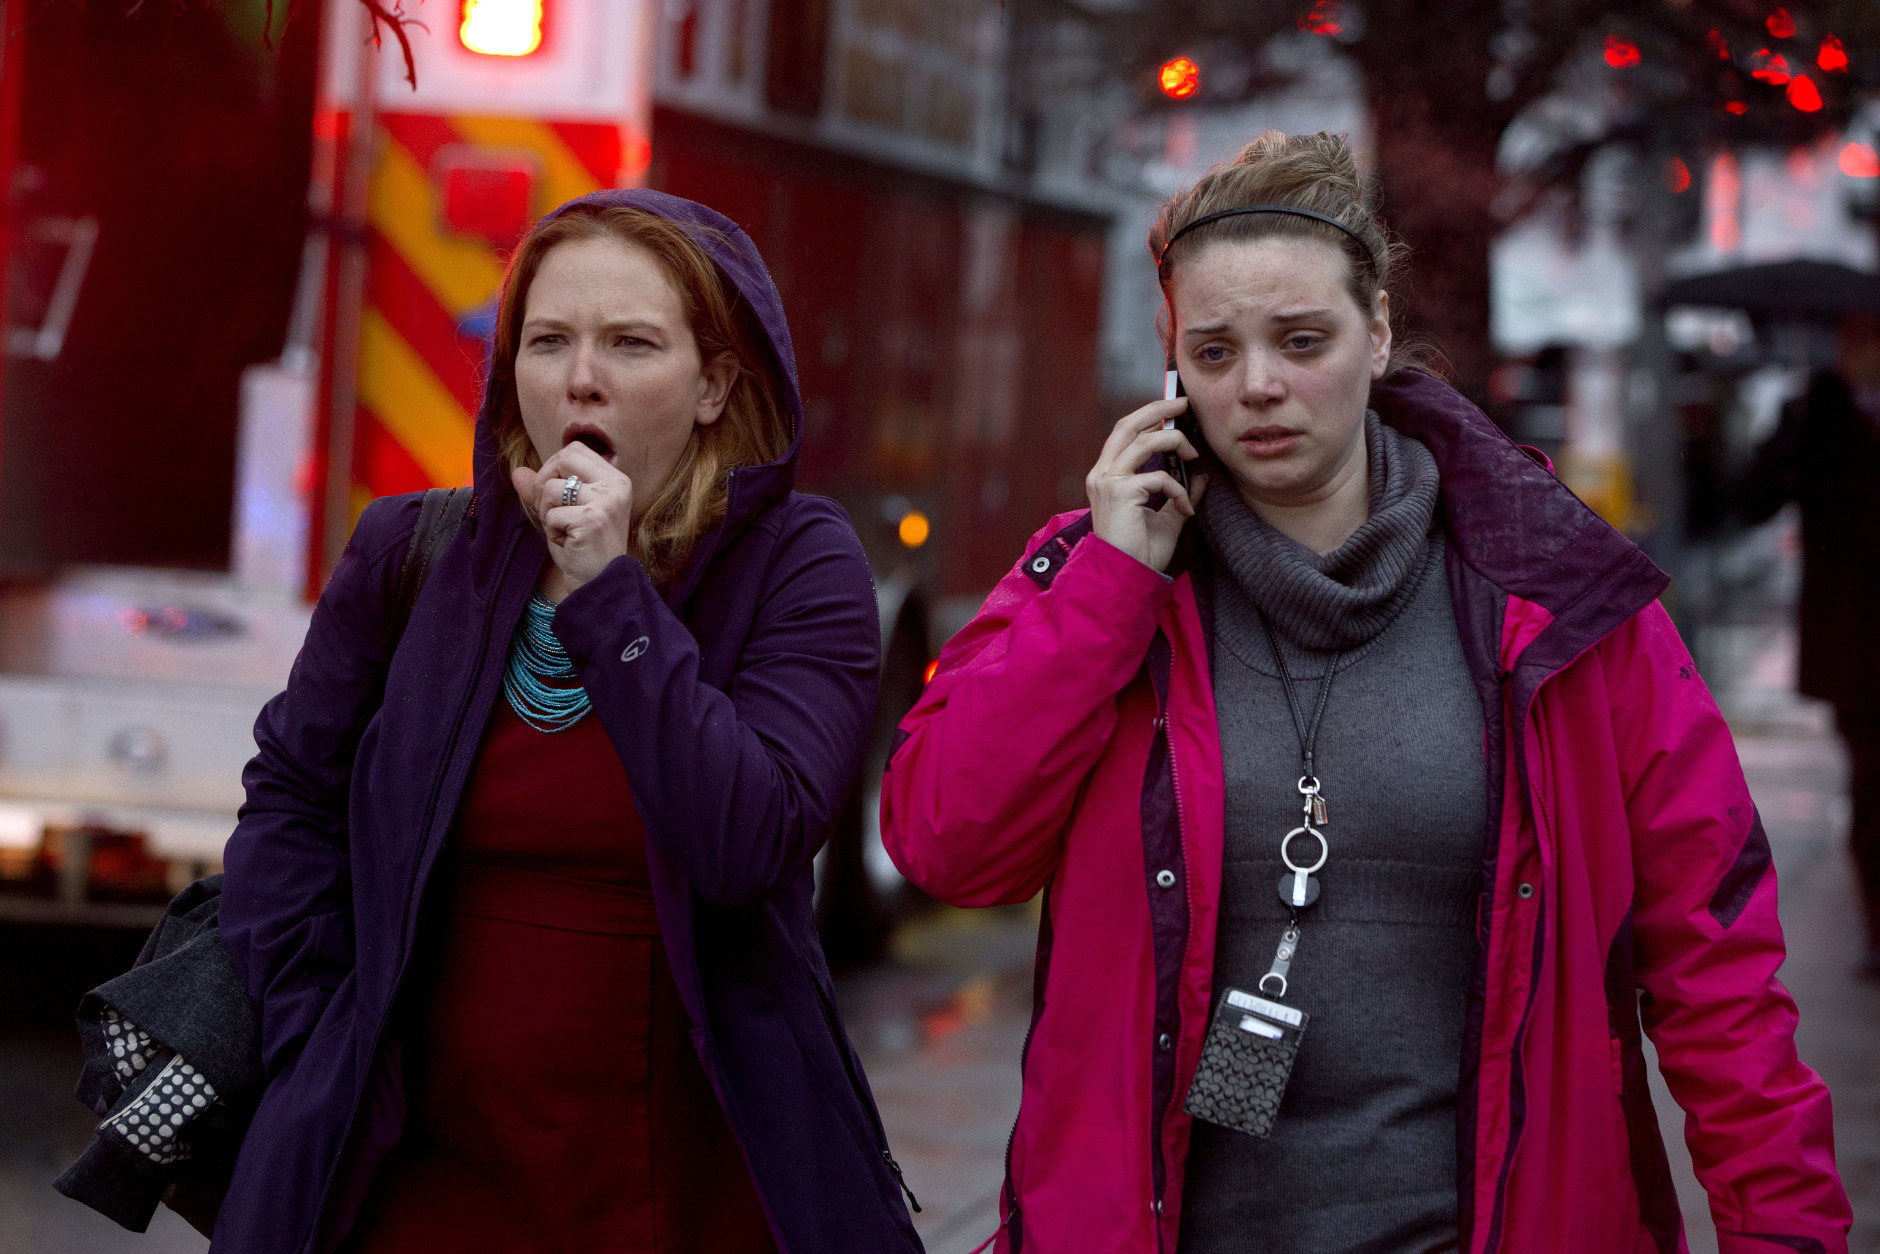 A woman coughs hard as she and another woman walk past an evacuation of people from a smoke filled Metro subway tunnel in Washington, Monday, Jan. 12, 2015. Metro officials say one of the busiest stations in downtown Washington has been evacuated because of smoke.  Authorities say the source of the smoke is unknown.   (AP Photo/Jacquelyn Martin)